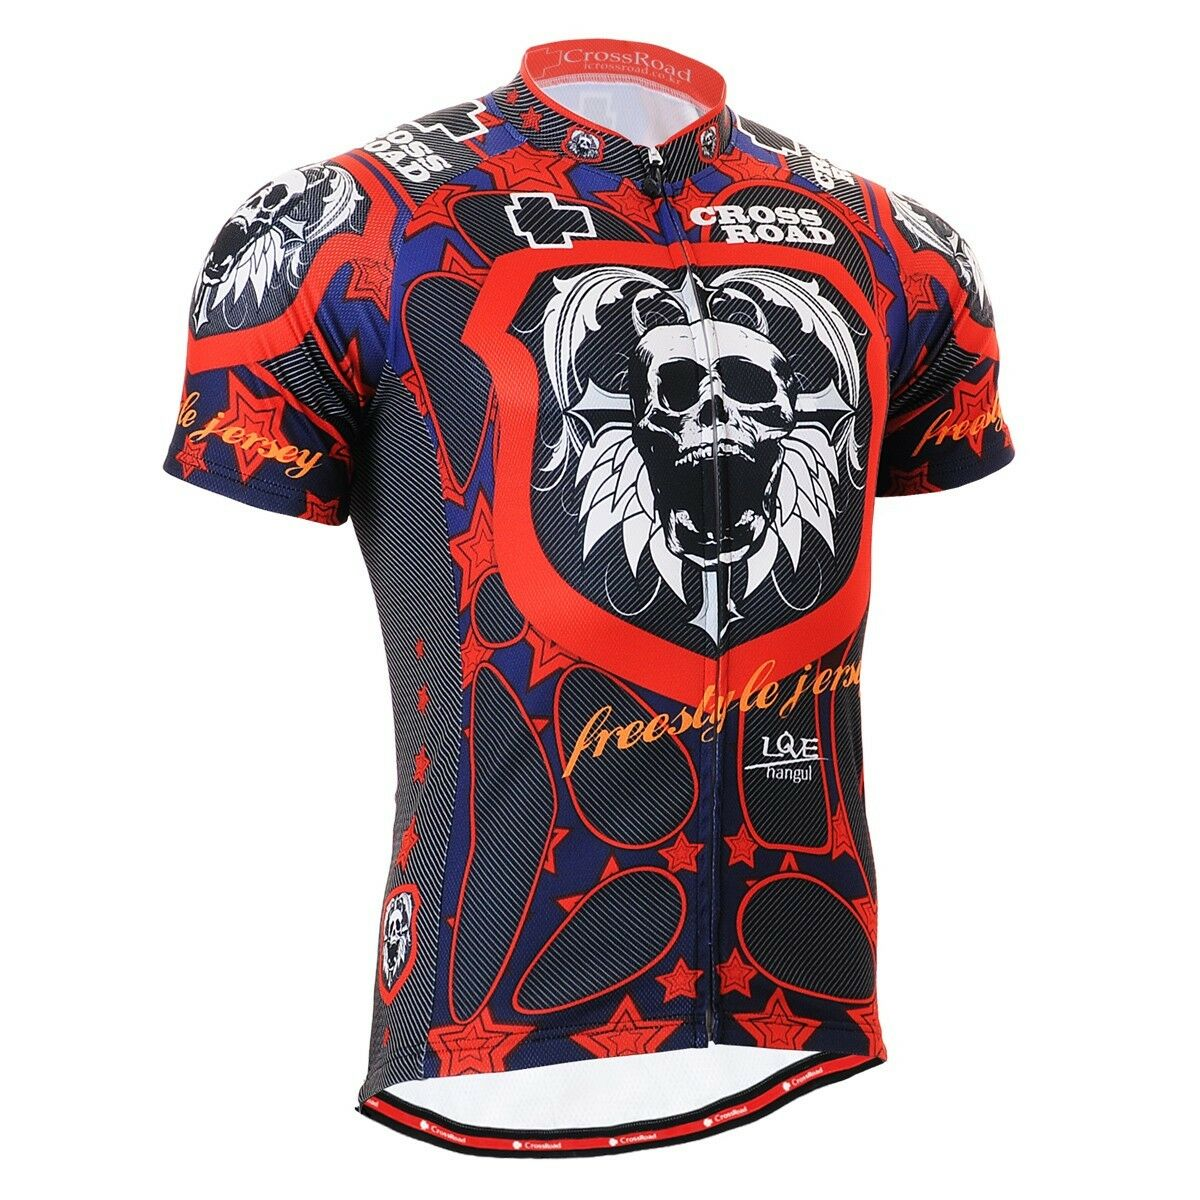 FIXGEAR CS-1102 Men's Short Sleeve Cycling Jersey Bicycle Apparel Roadbike MTB